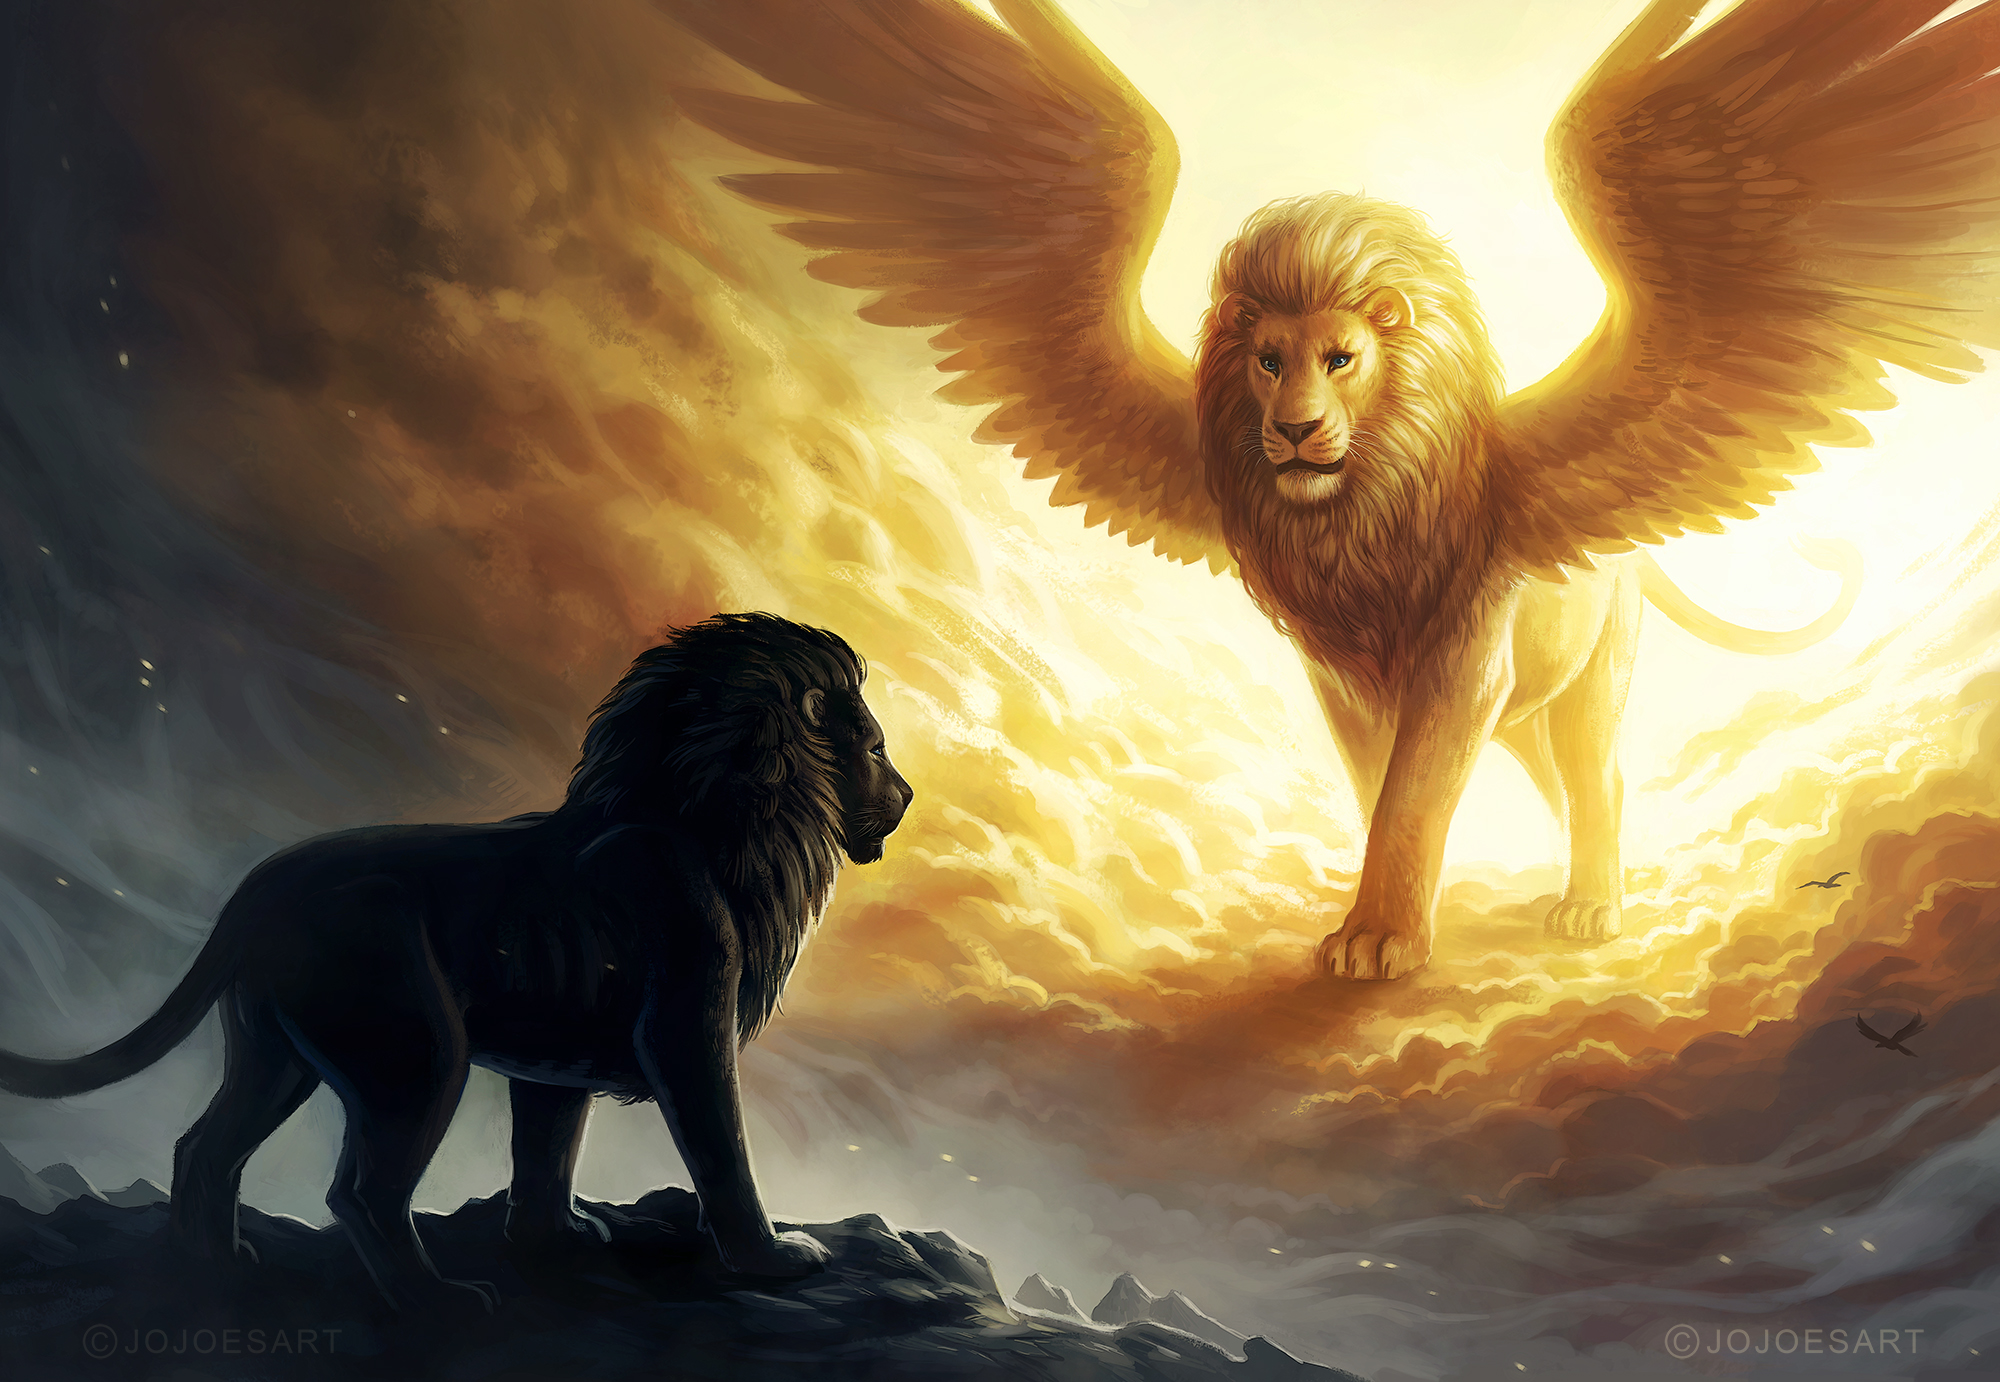 Lion King Spiritual Dark Fantasy, Hd Animals, 4k Wallpapers - Finding Yourself Spiritually Quote , HD Wallpaper & Backgrounds